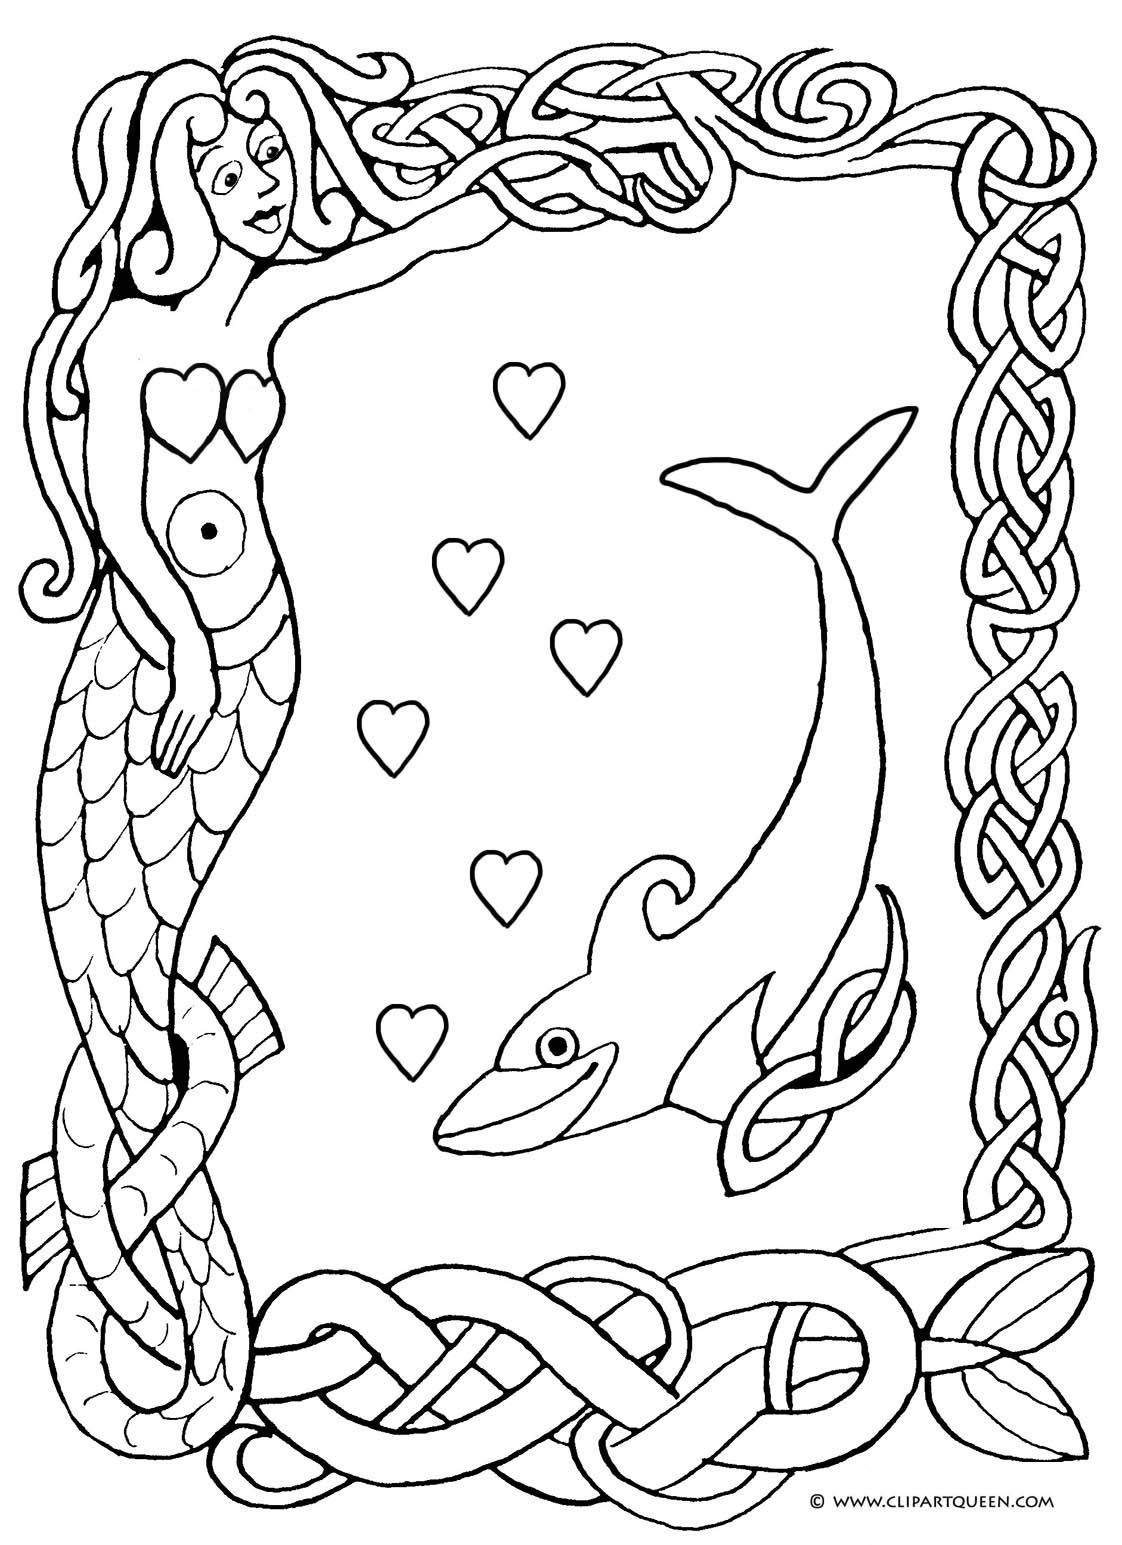 Valentine coloring page to print